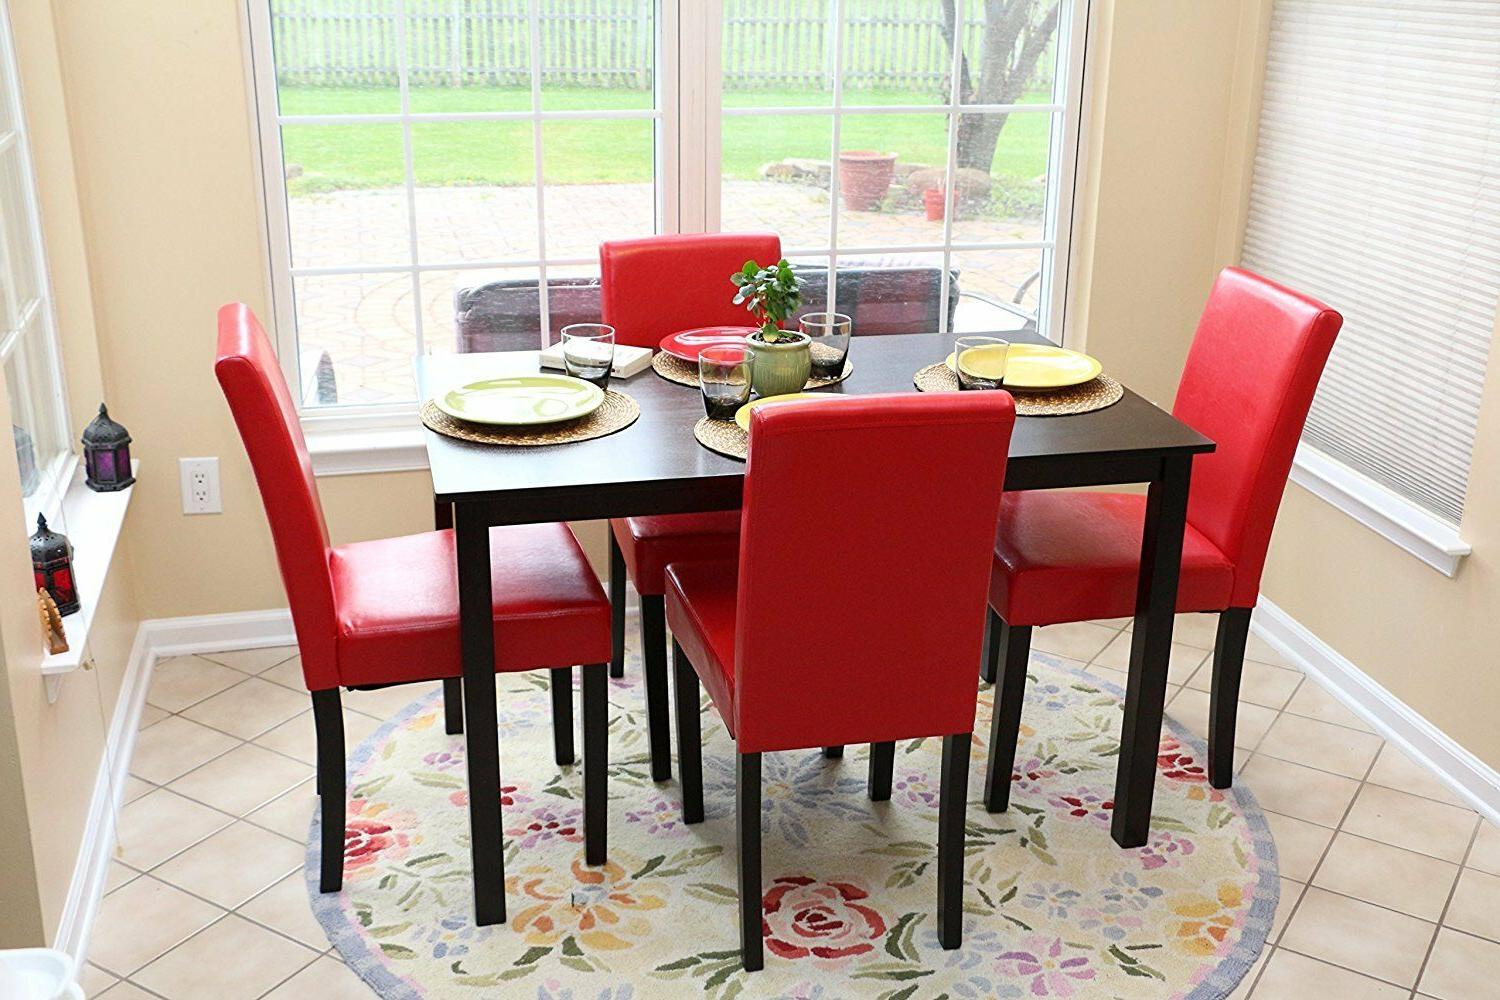 Home Life 5 PC Red Leather 4 Person Table and Chairs Red Din